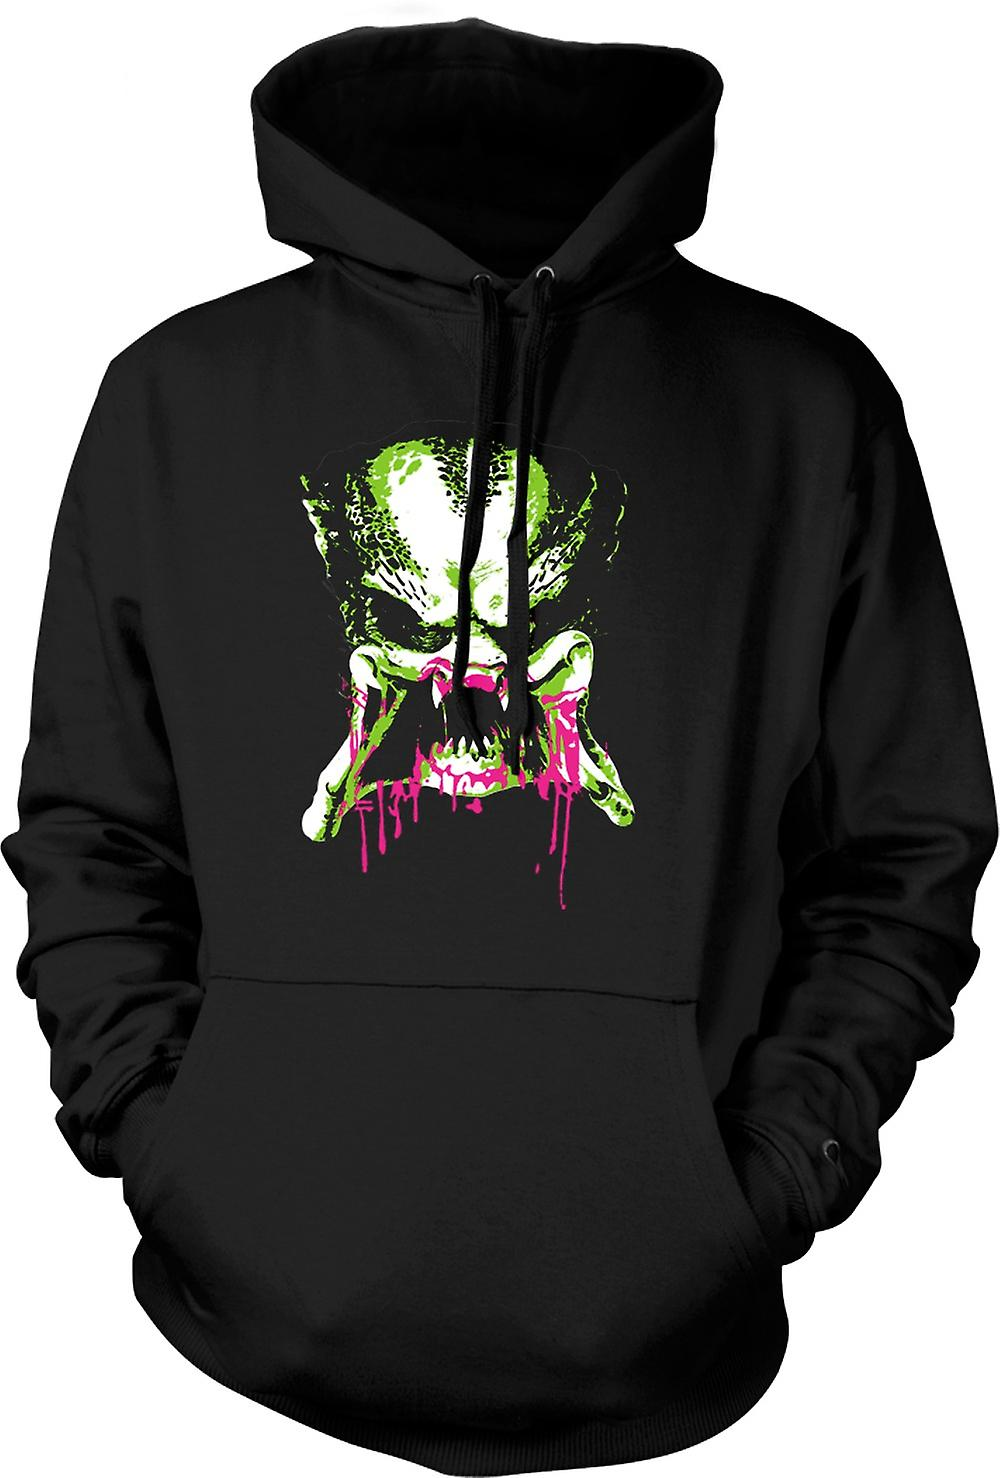 Mens Hoodie - Predator Alien - Pop Art - Visage - Film